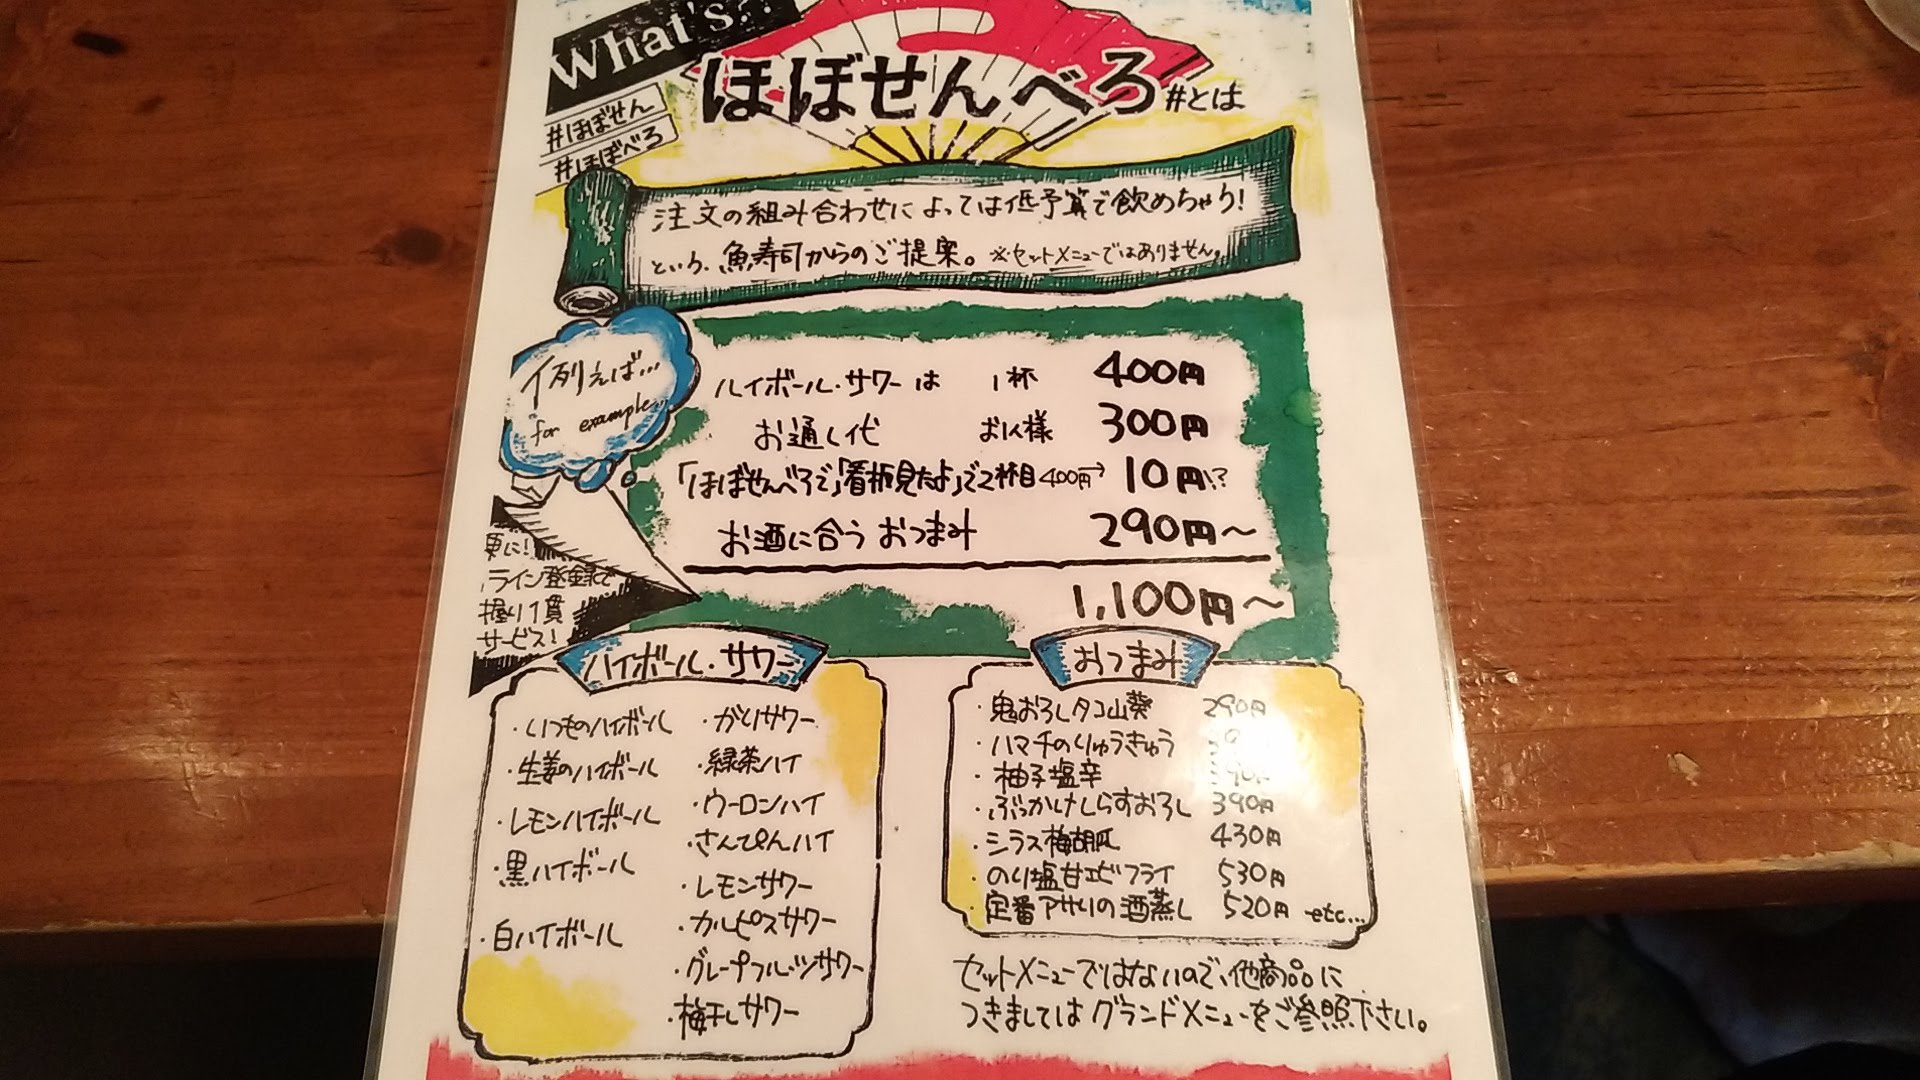 The sembero menu of Sakana sushi